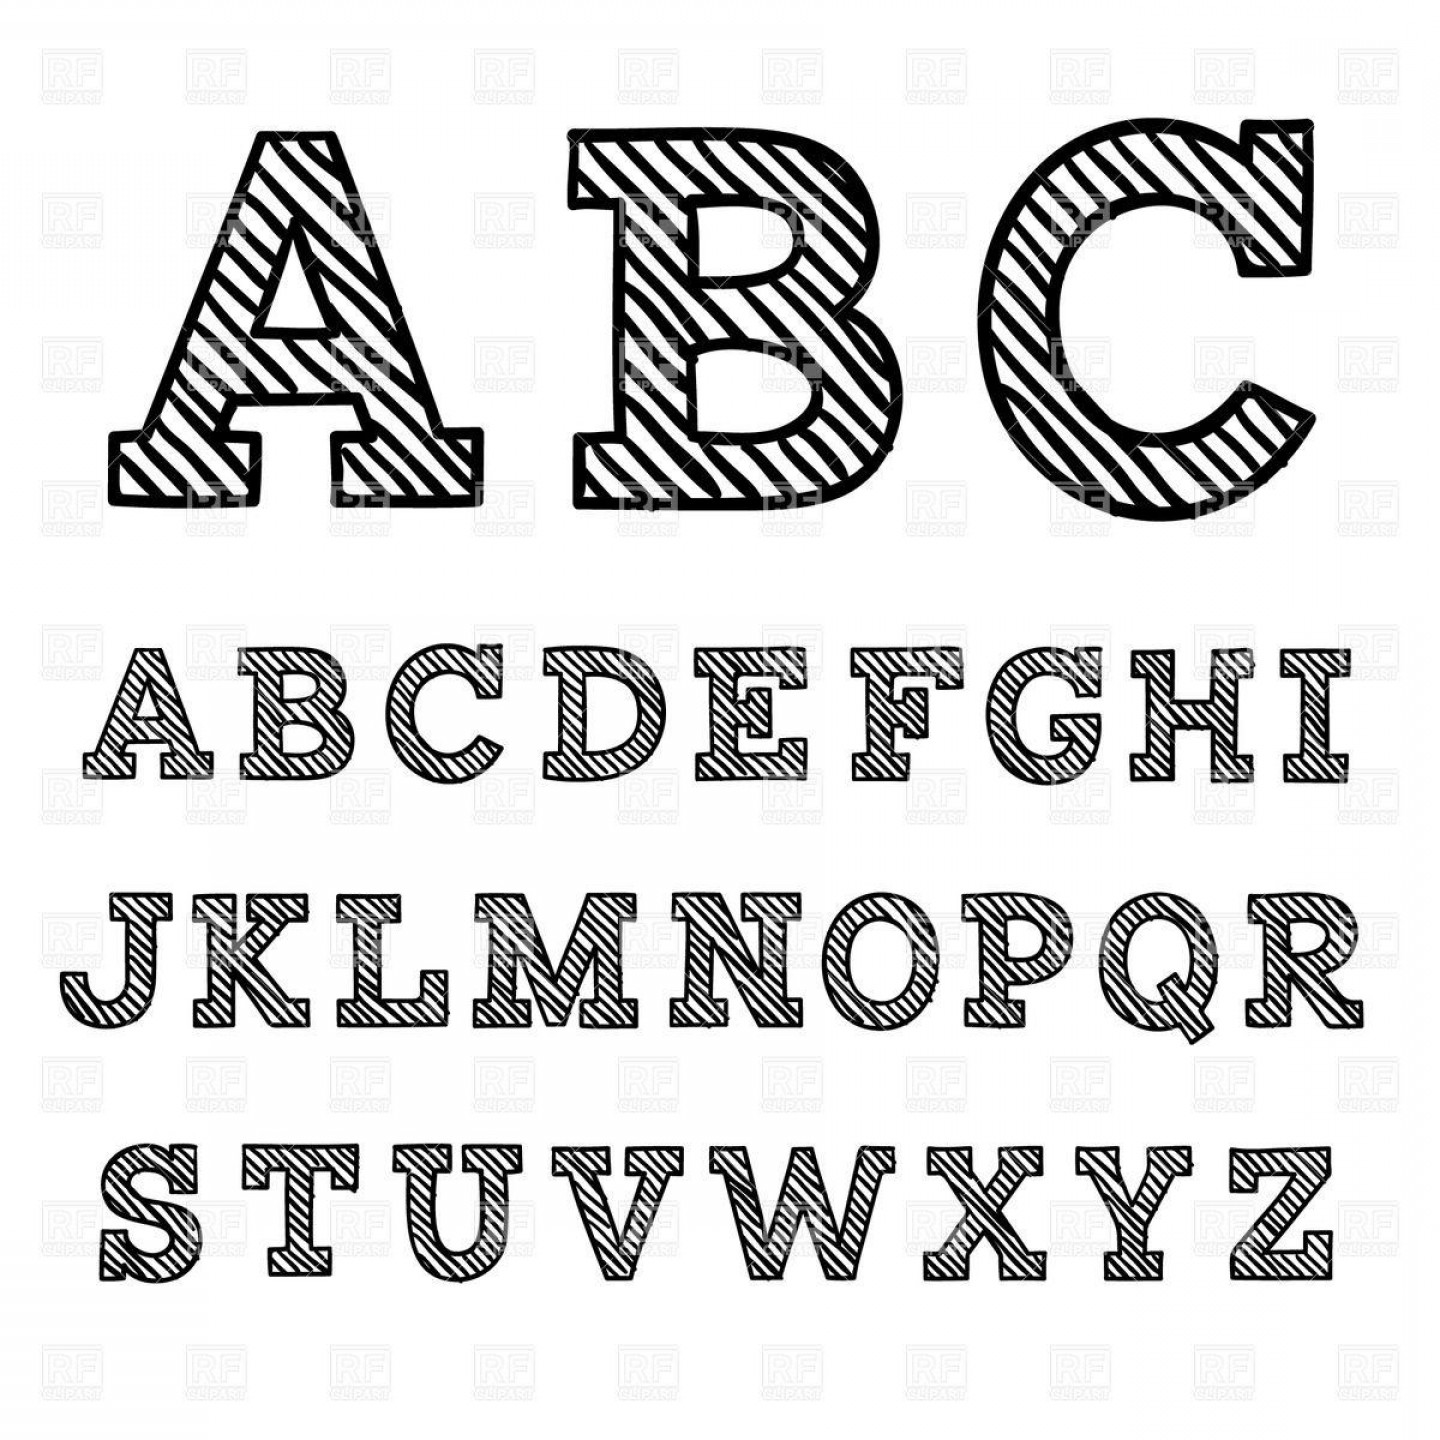 EPS Vector Letters: Best Free Black Font With Shaded Letters Download Royalty Vector File Eps